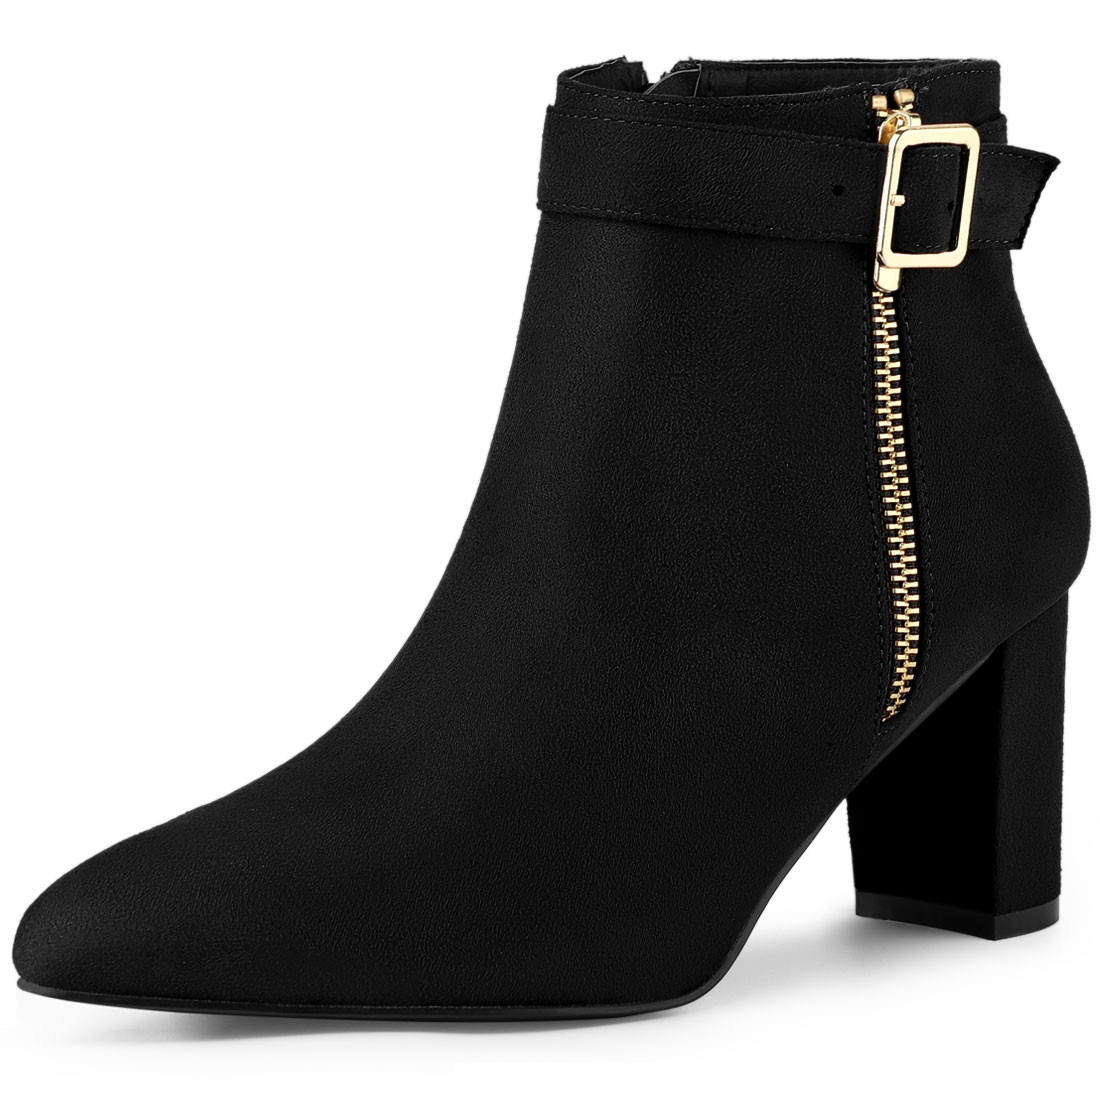 Allegra K Women's Pointed Toe Buckle Chunky Heel Ankle Booties Black US 5.5